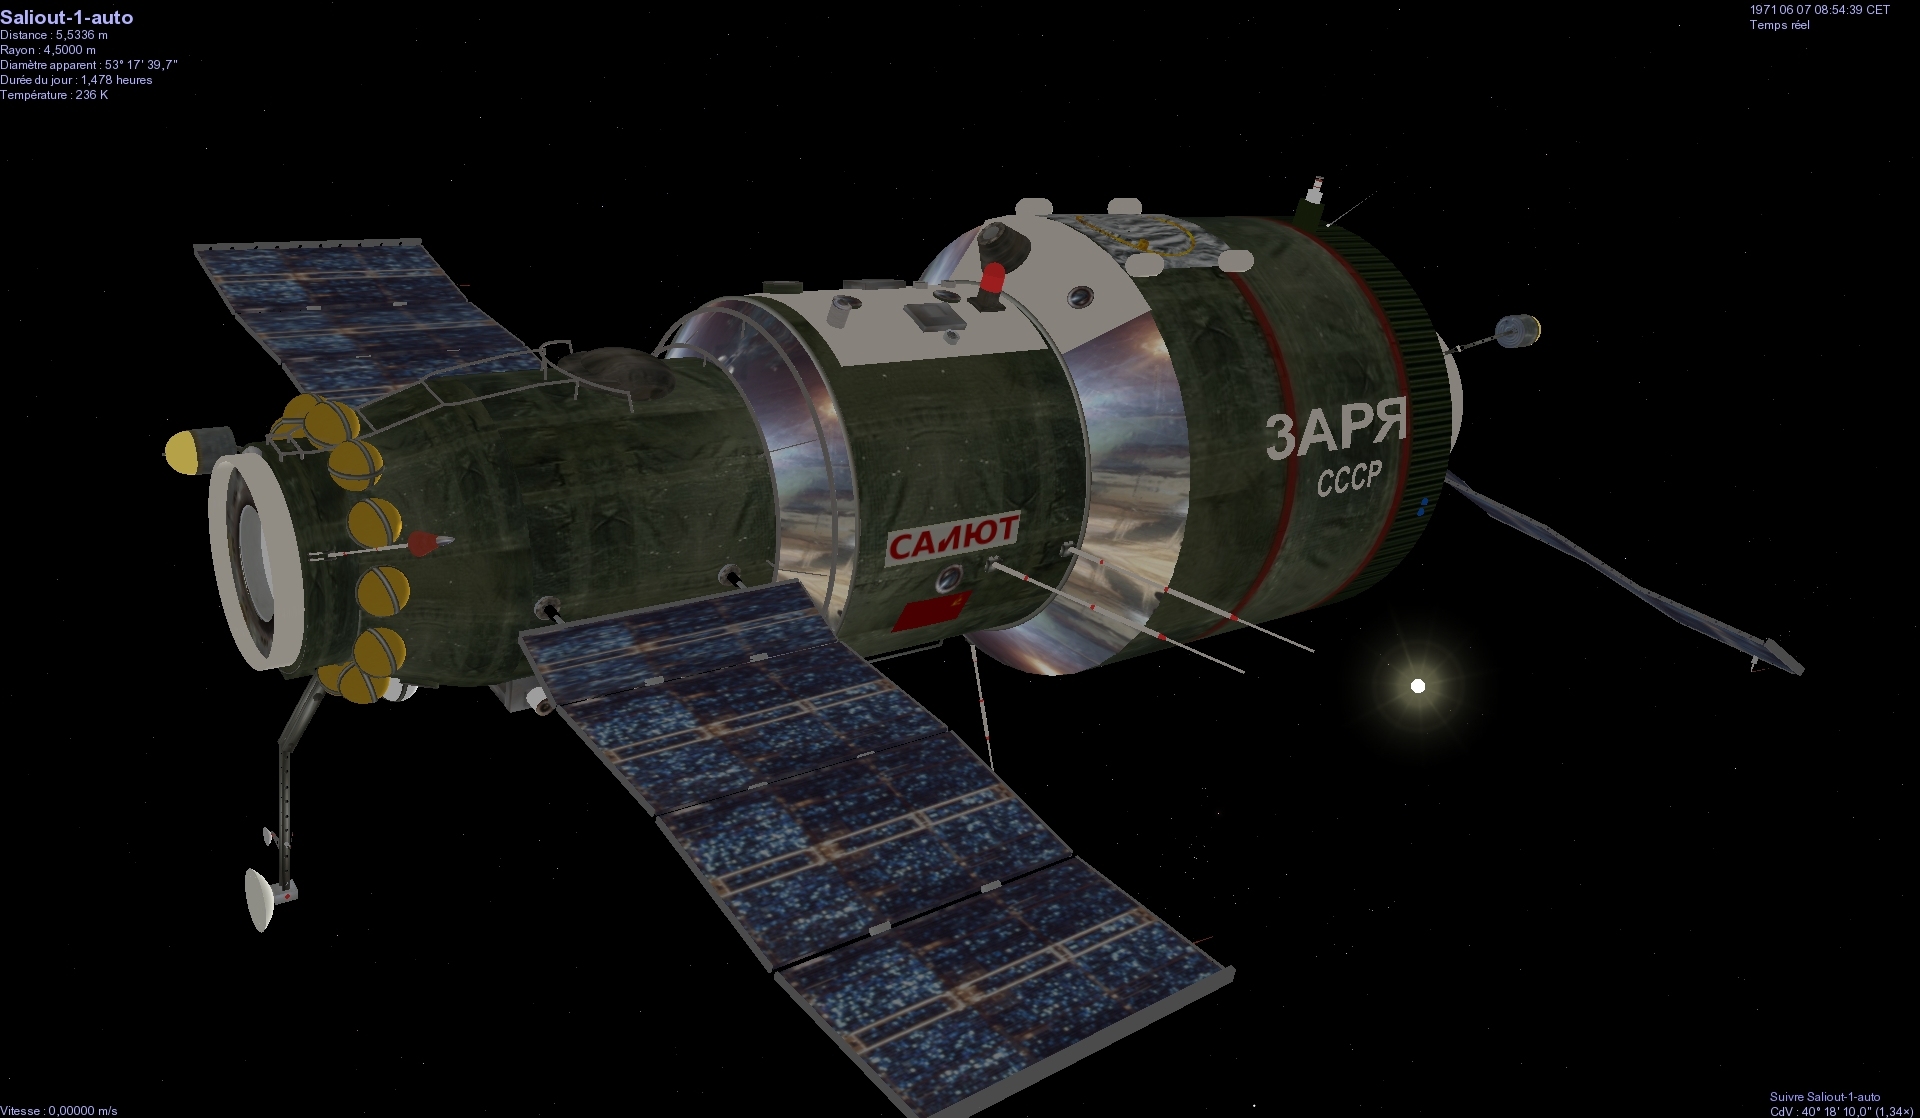 salyut 1 space station illustration - photo #15